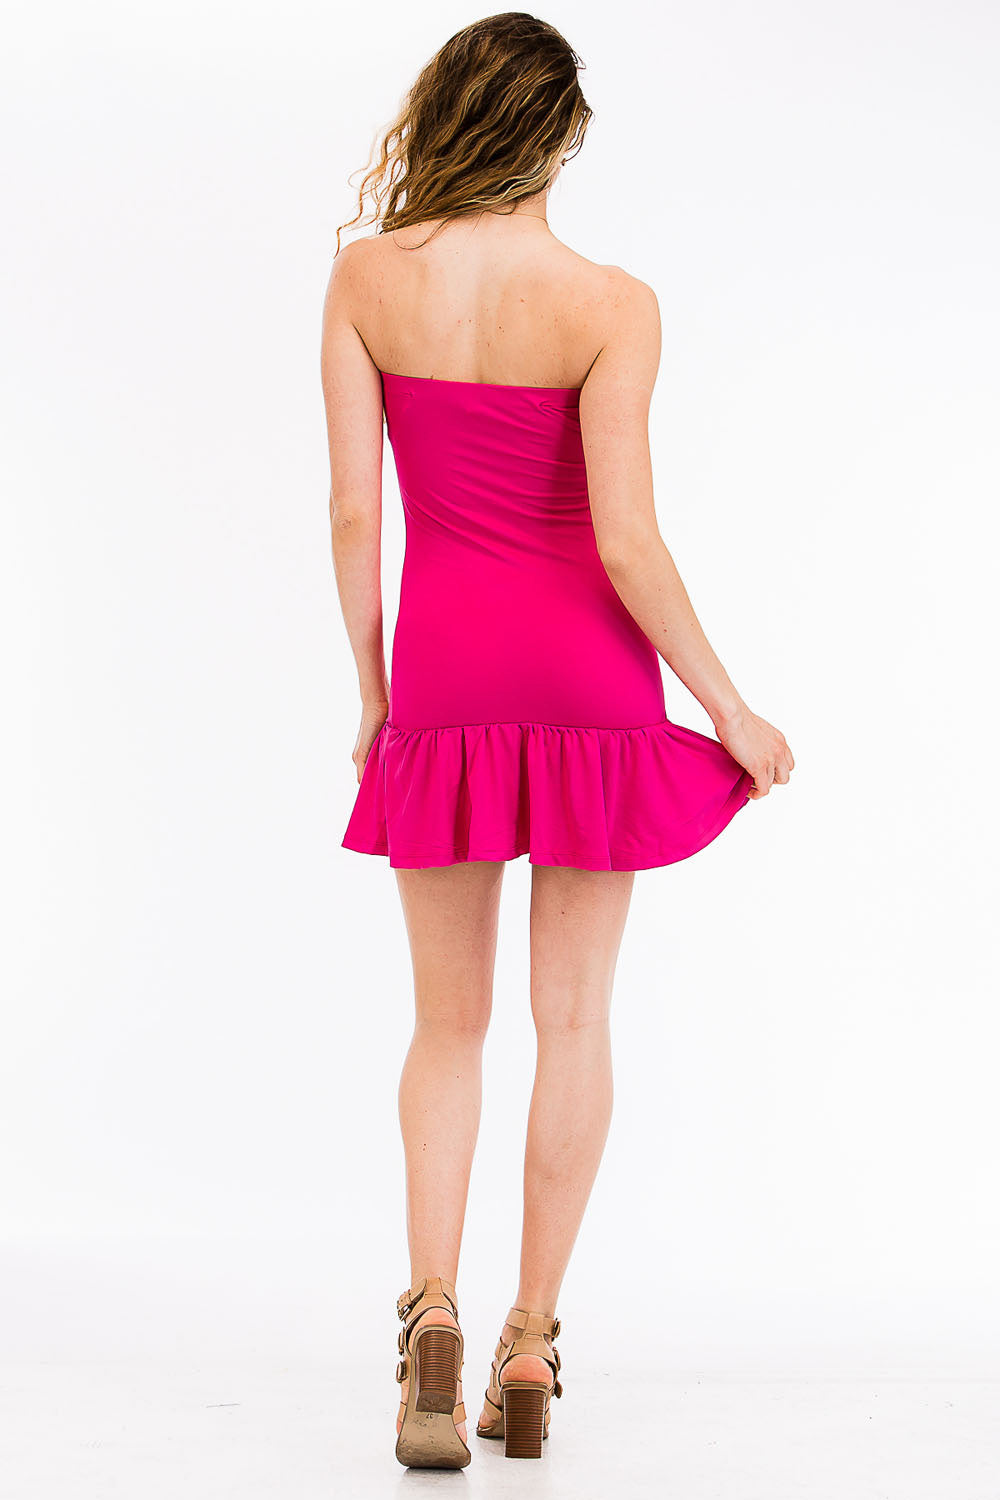 Dress - BD2225 - Capella Apparel